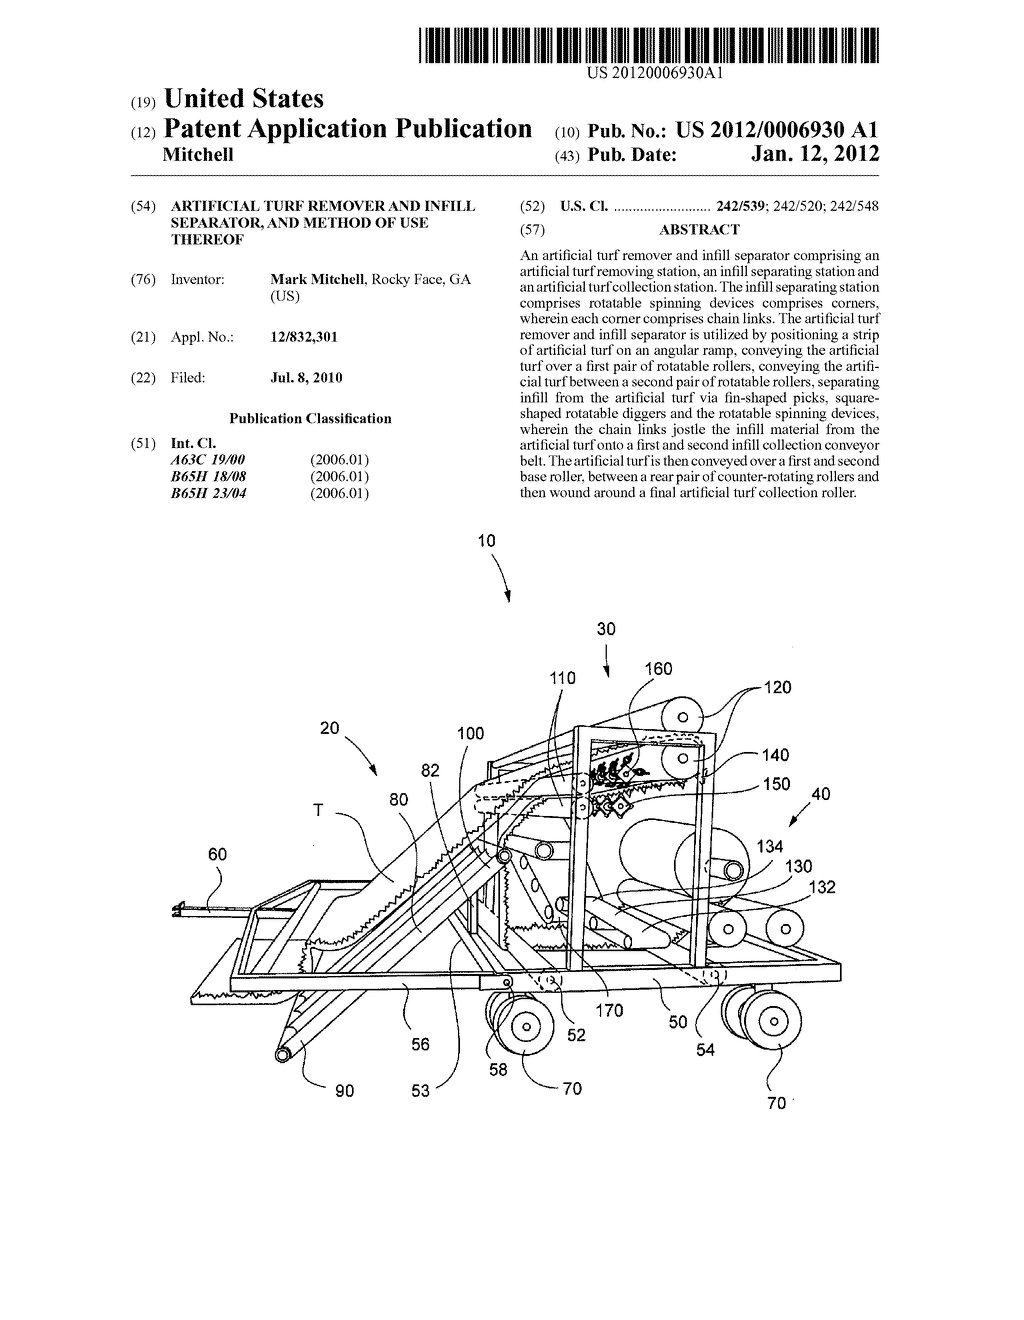 Artificial Turf Remover and Infill Separator, and Method of Use Thereof - diagram, schematic, and image 01